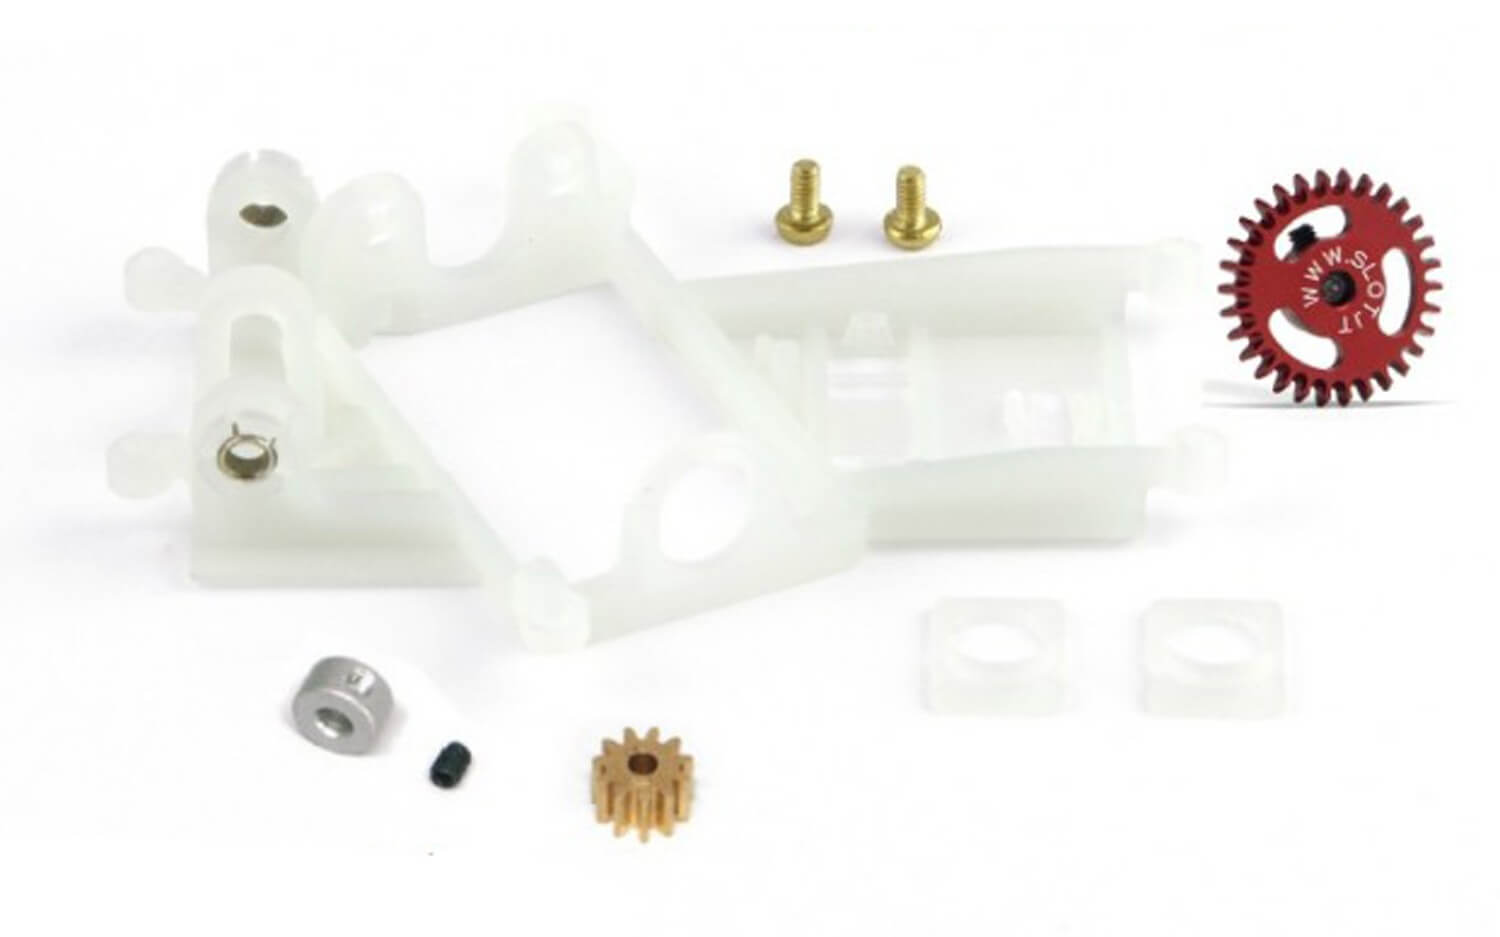 SIKK10B Slot.it Anglewinder 1.0mm offset conversion kit